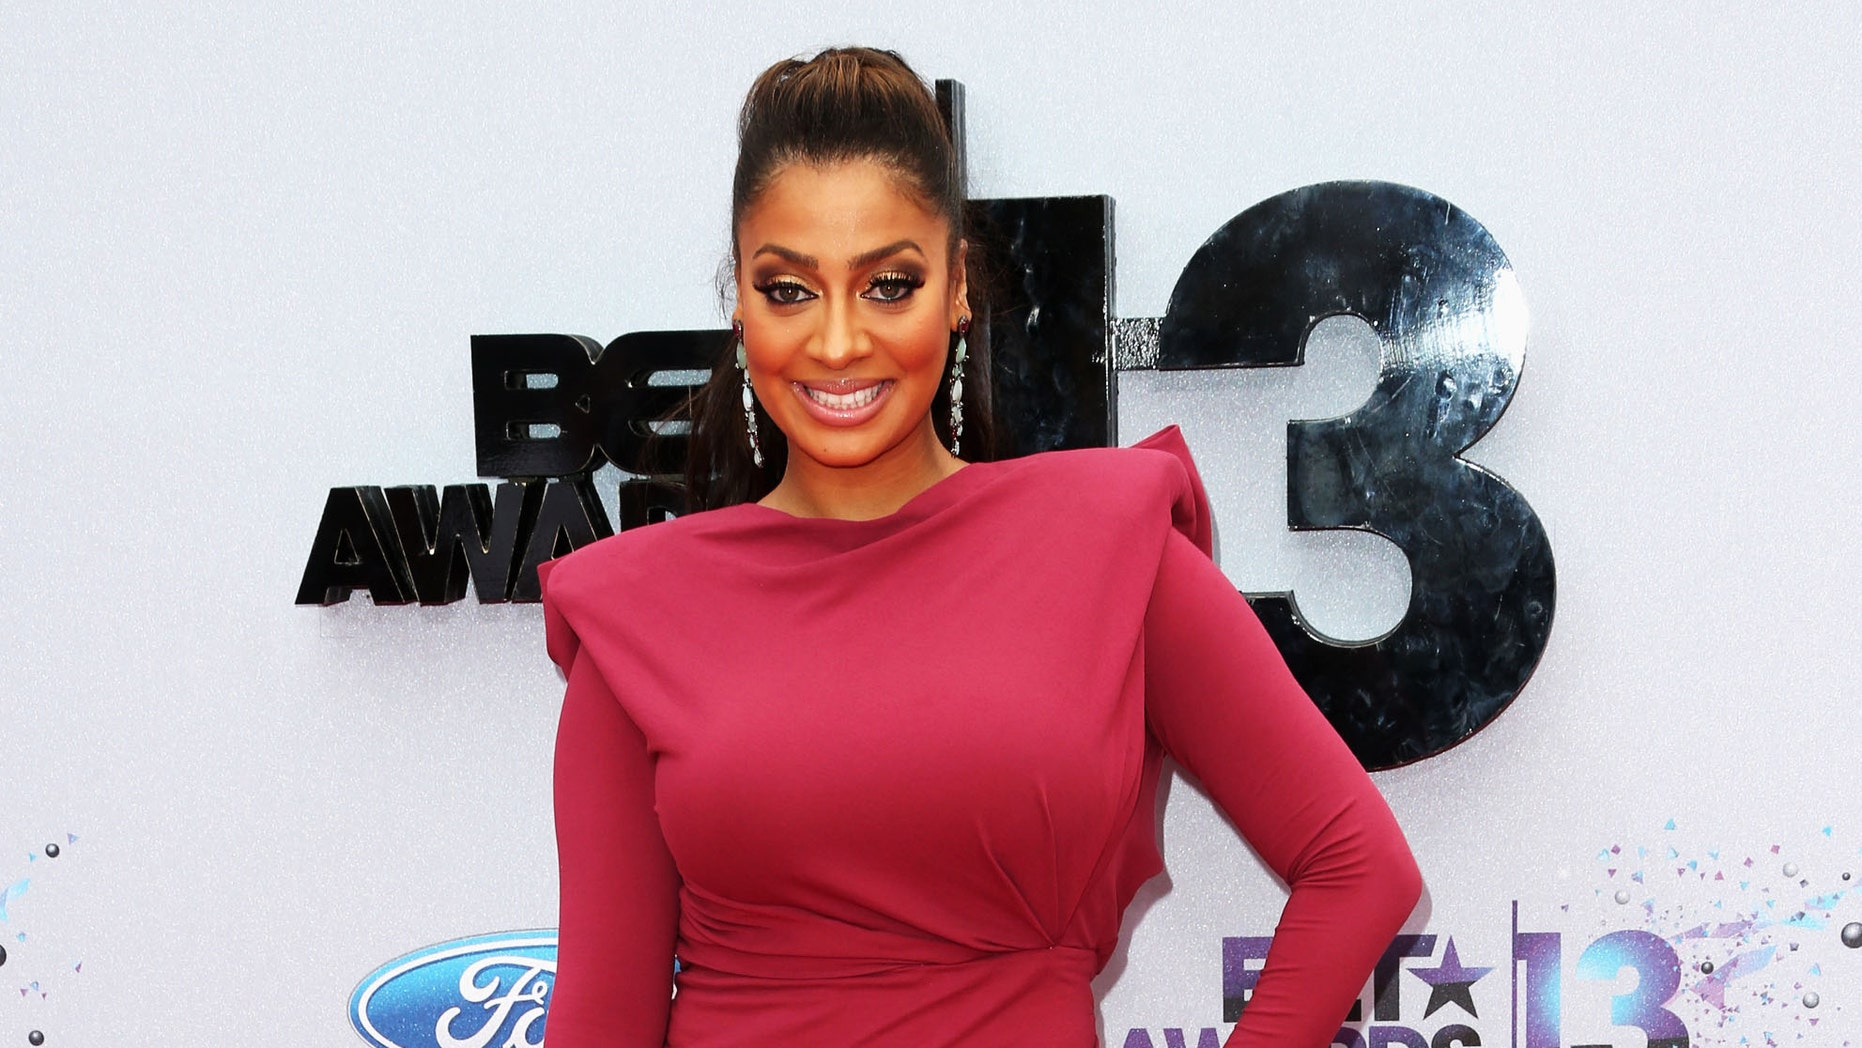 La La Anthony attends the 2013 BET Awards at Nokia Theatre L.A. Live on June 30, 2013 in Los Angeles, California.  (Photo by Frederick M. Brown/Getty Images for BET)